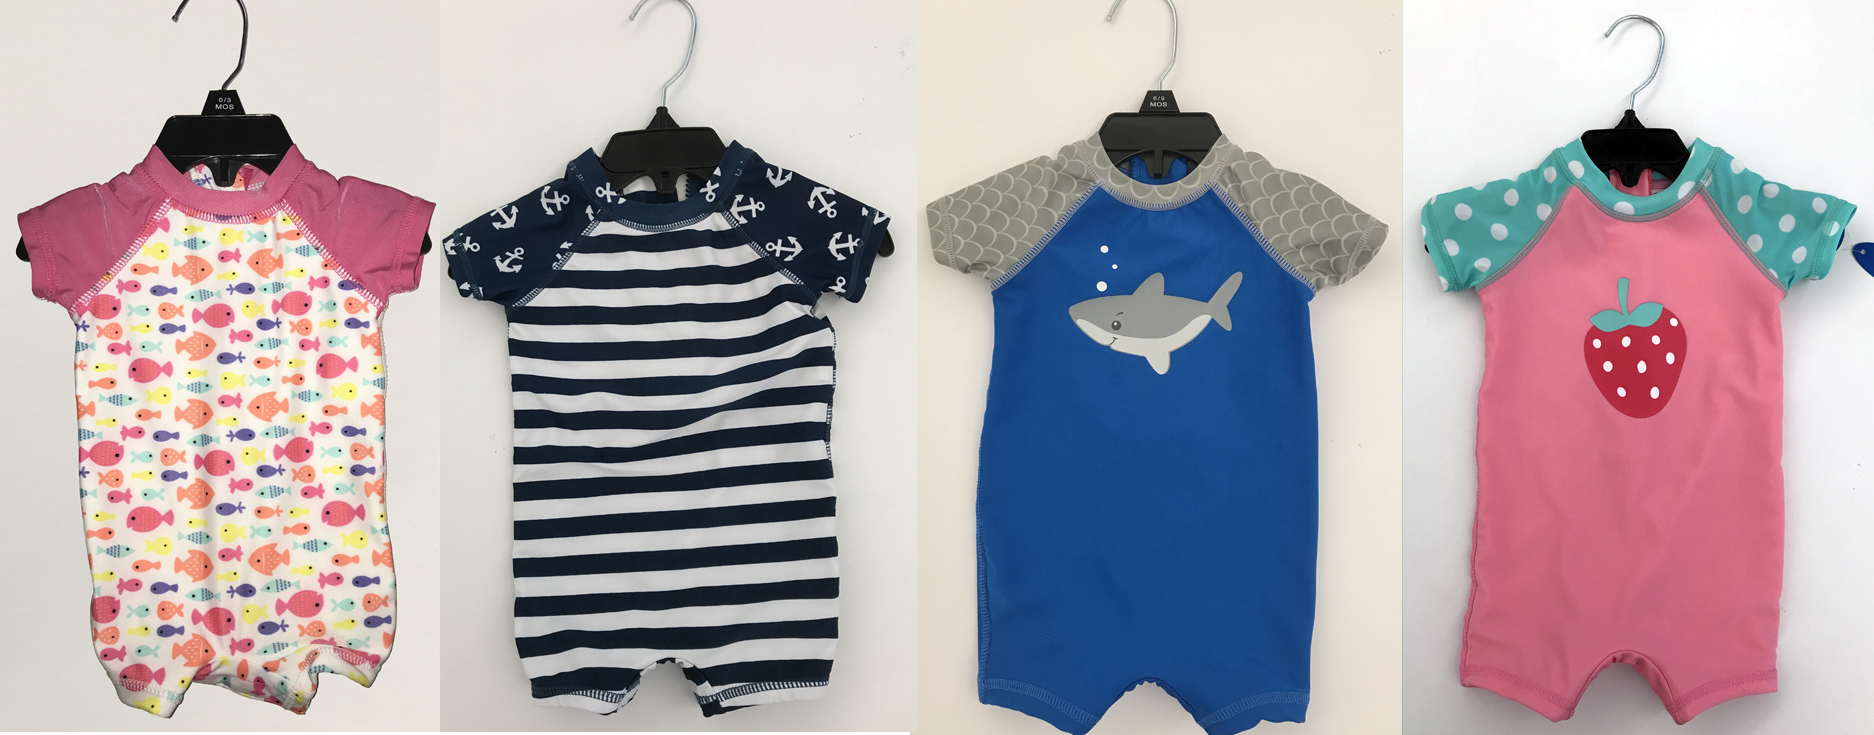 Swimsuits For Babies And Toddlers Sold At Meijer Recalled For Detaching Snaps